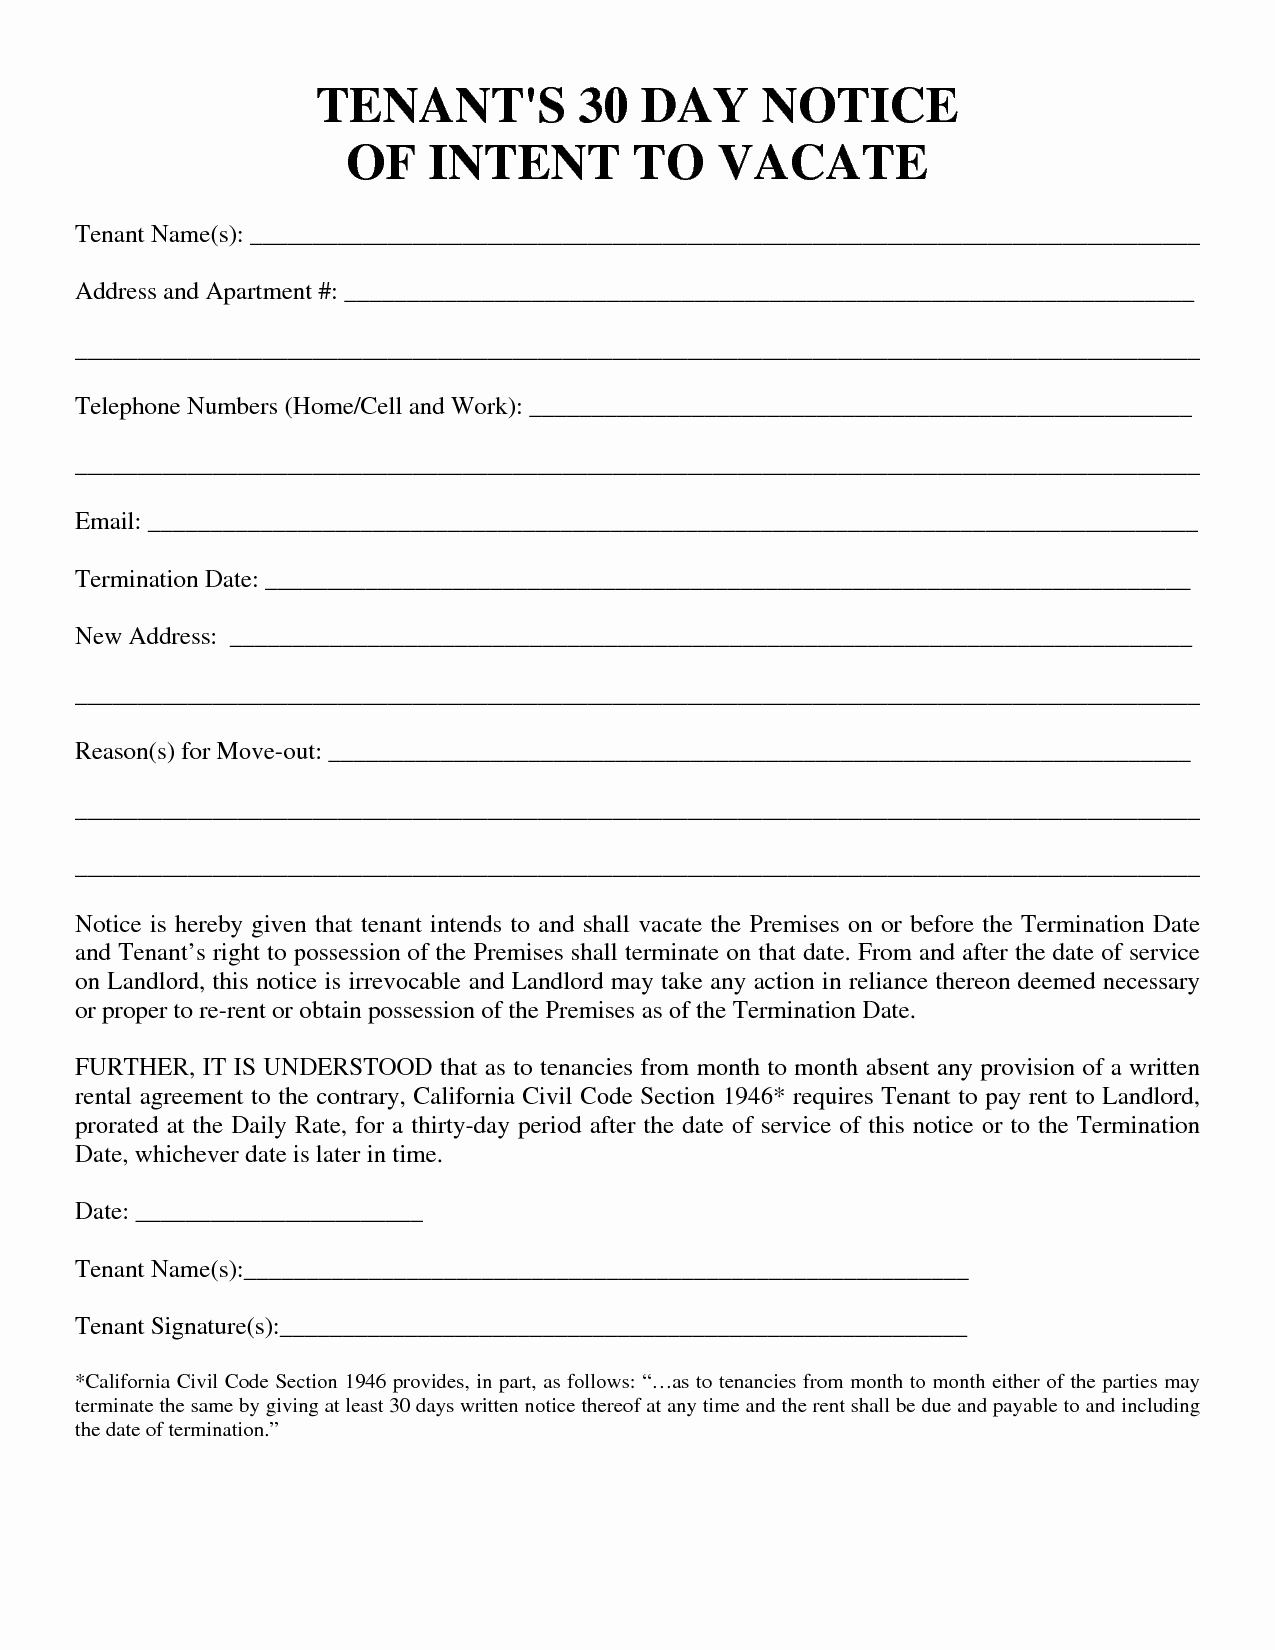 Rental 30 Day Notice Template Fresh 30 Day Notice to Vacate Template